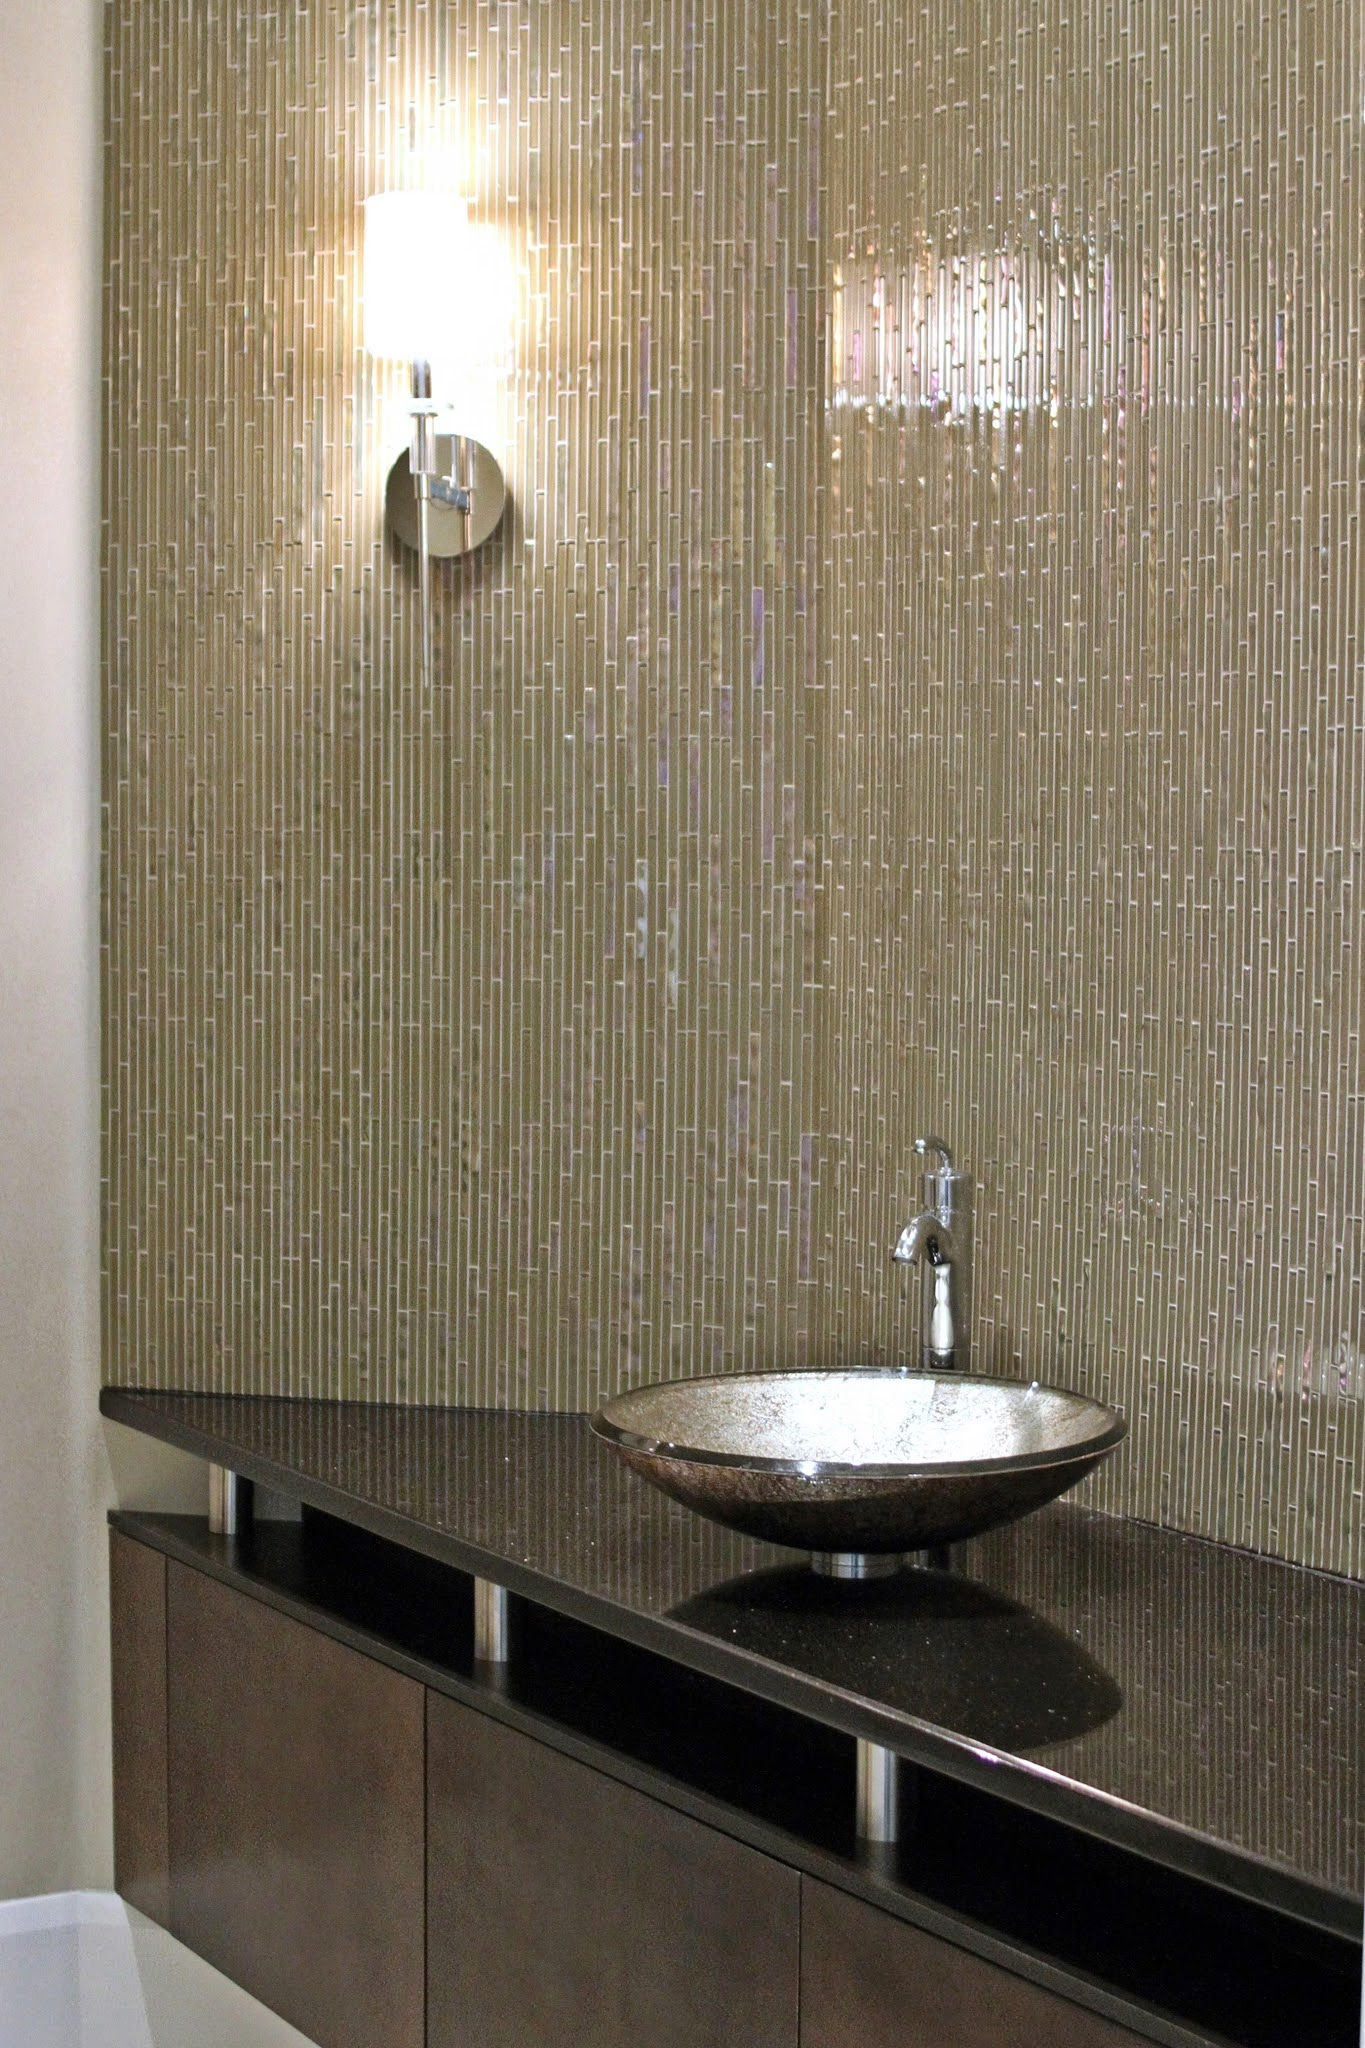 Amazing Press Bathroom Kitchen Remodeling Fort Myers Tropical. Imex Stone Google